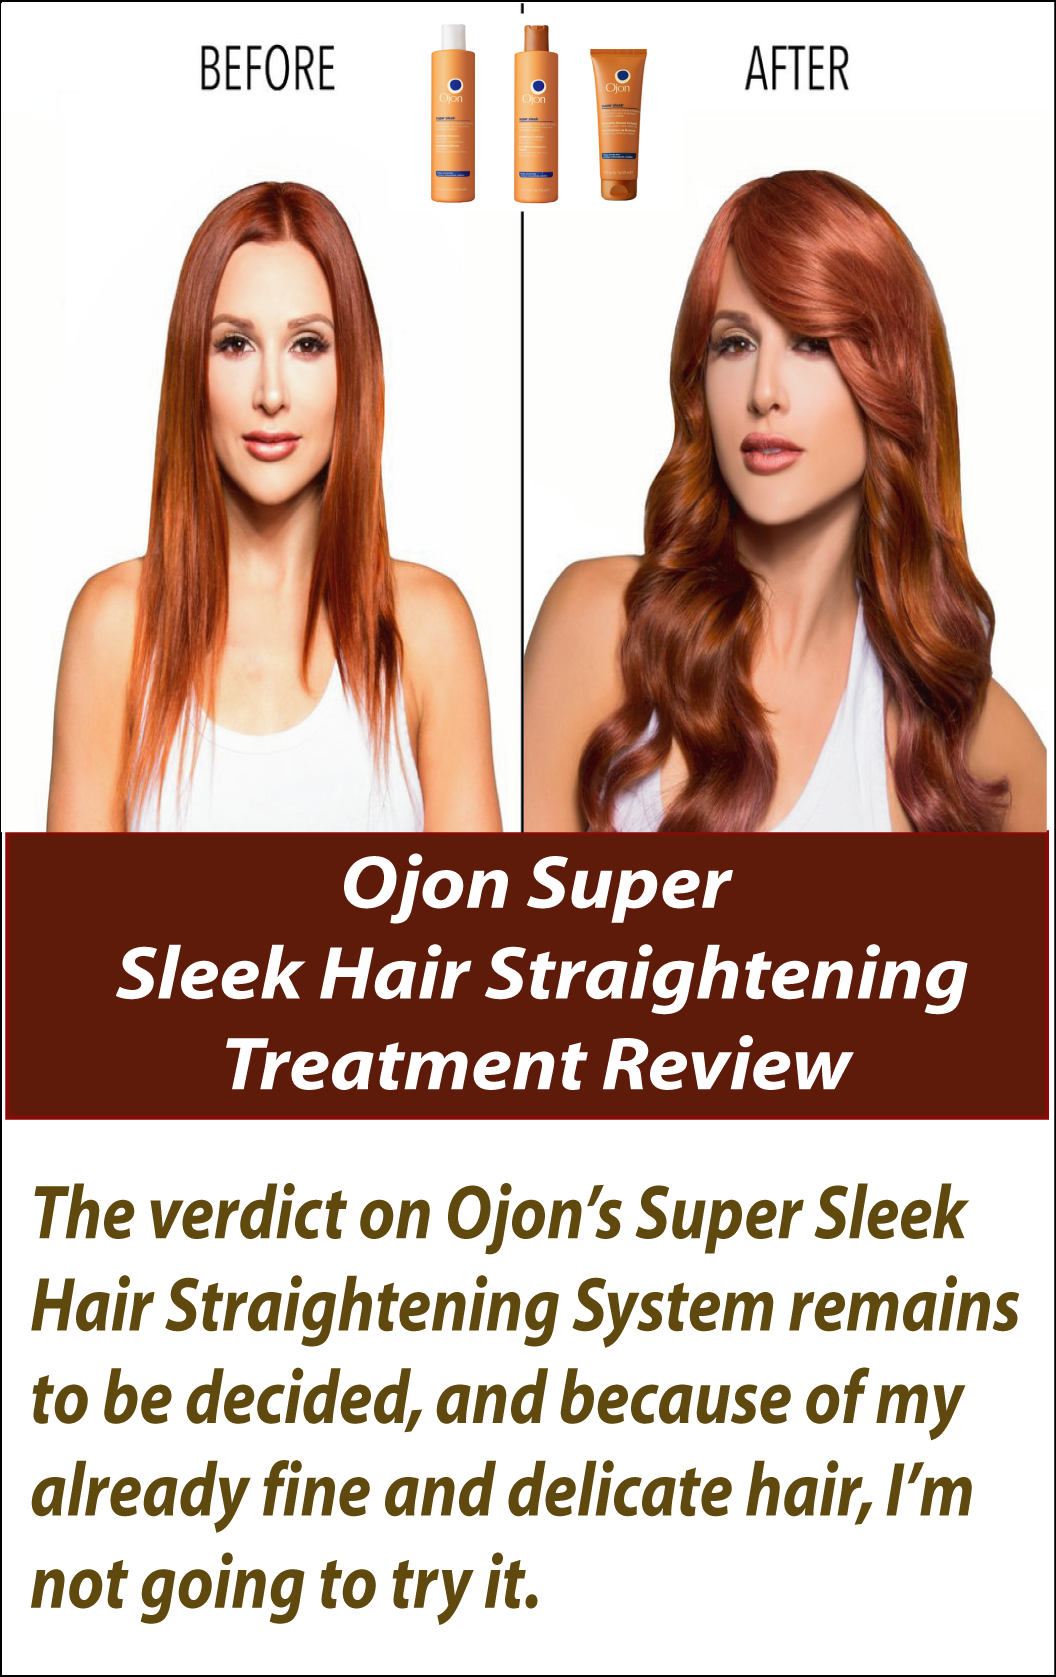 Fancy having sleek glossy strands once again a recent trendy